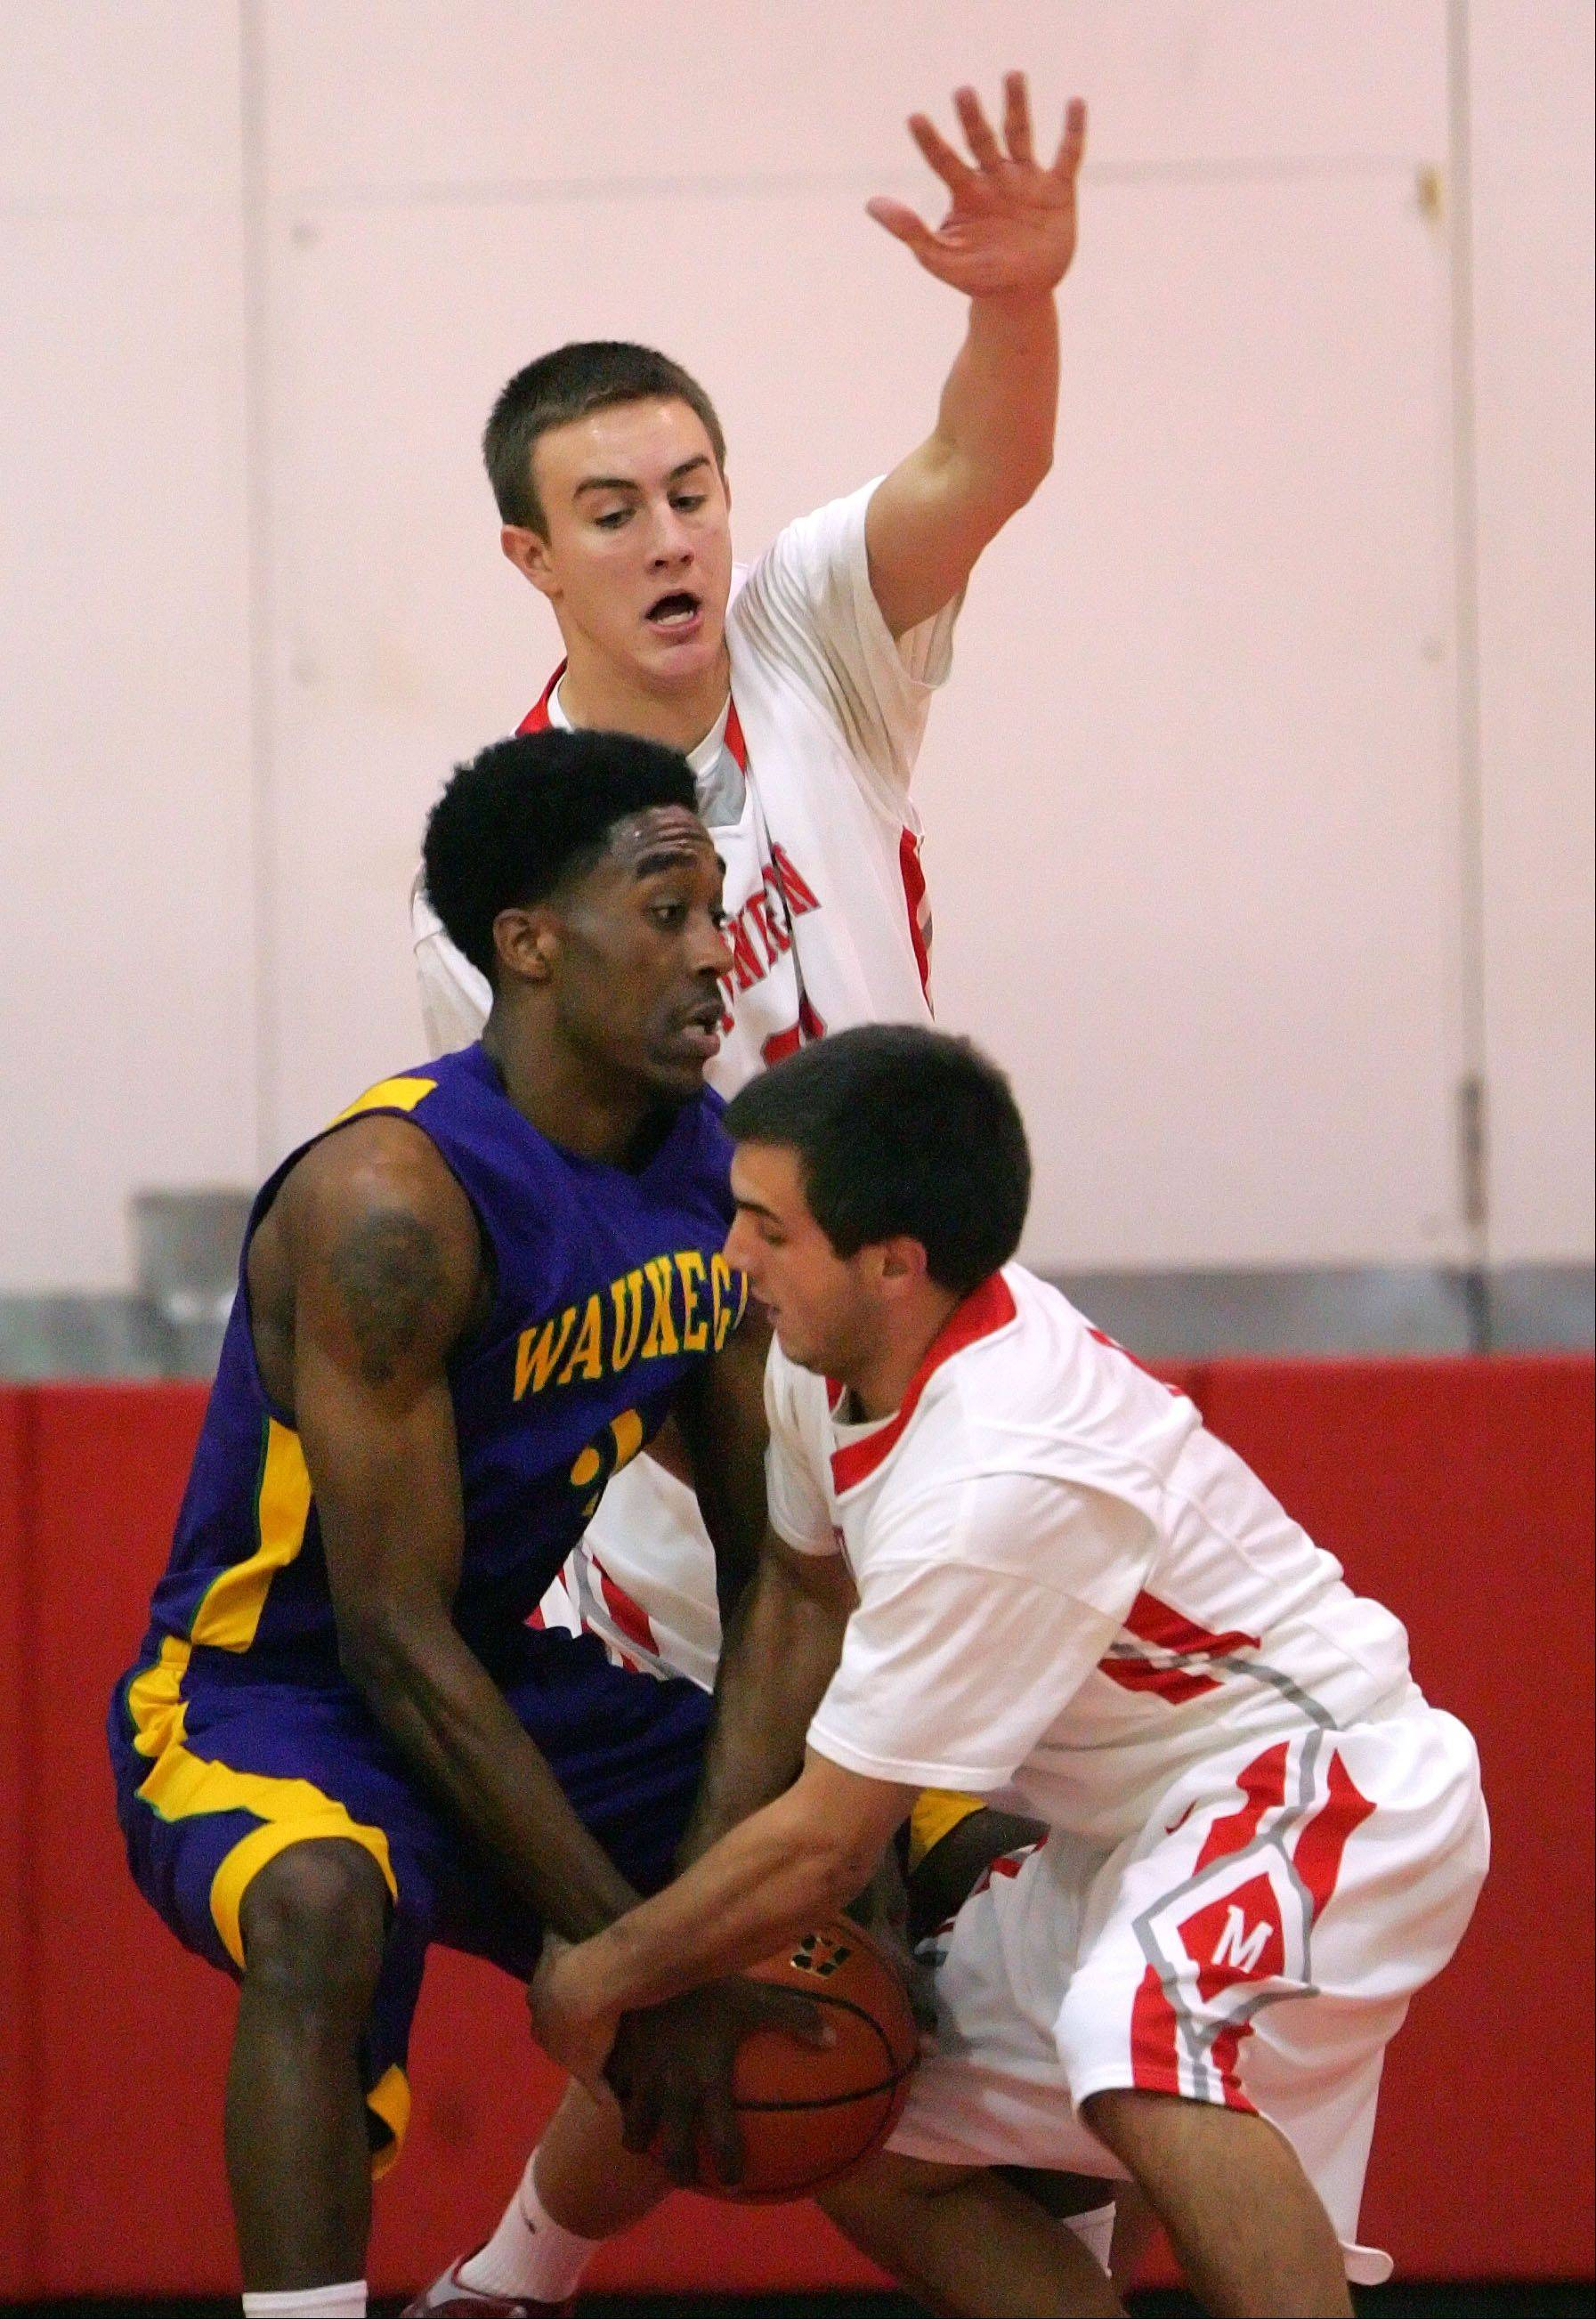 Mundelein's Sean O'Brien, back, and Thomas Gandolfi apply some tough defense against Waukegan's Cornell Fort during their game Friday night at Mundelein High School.